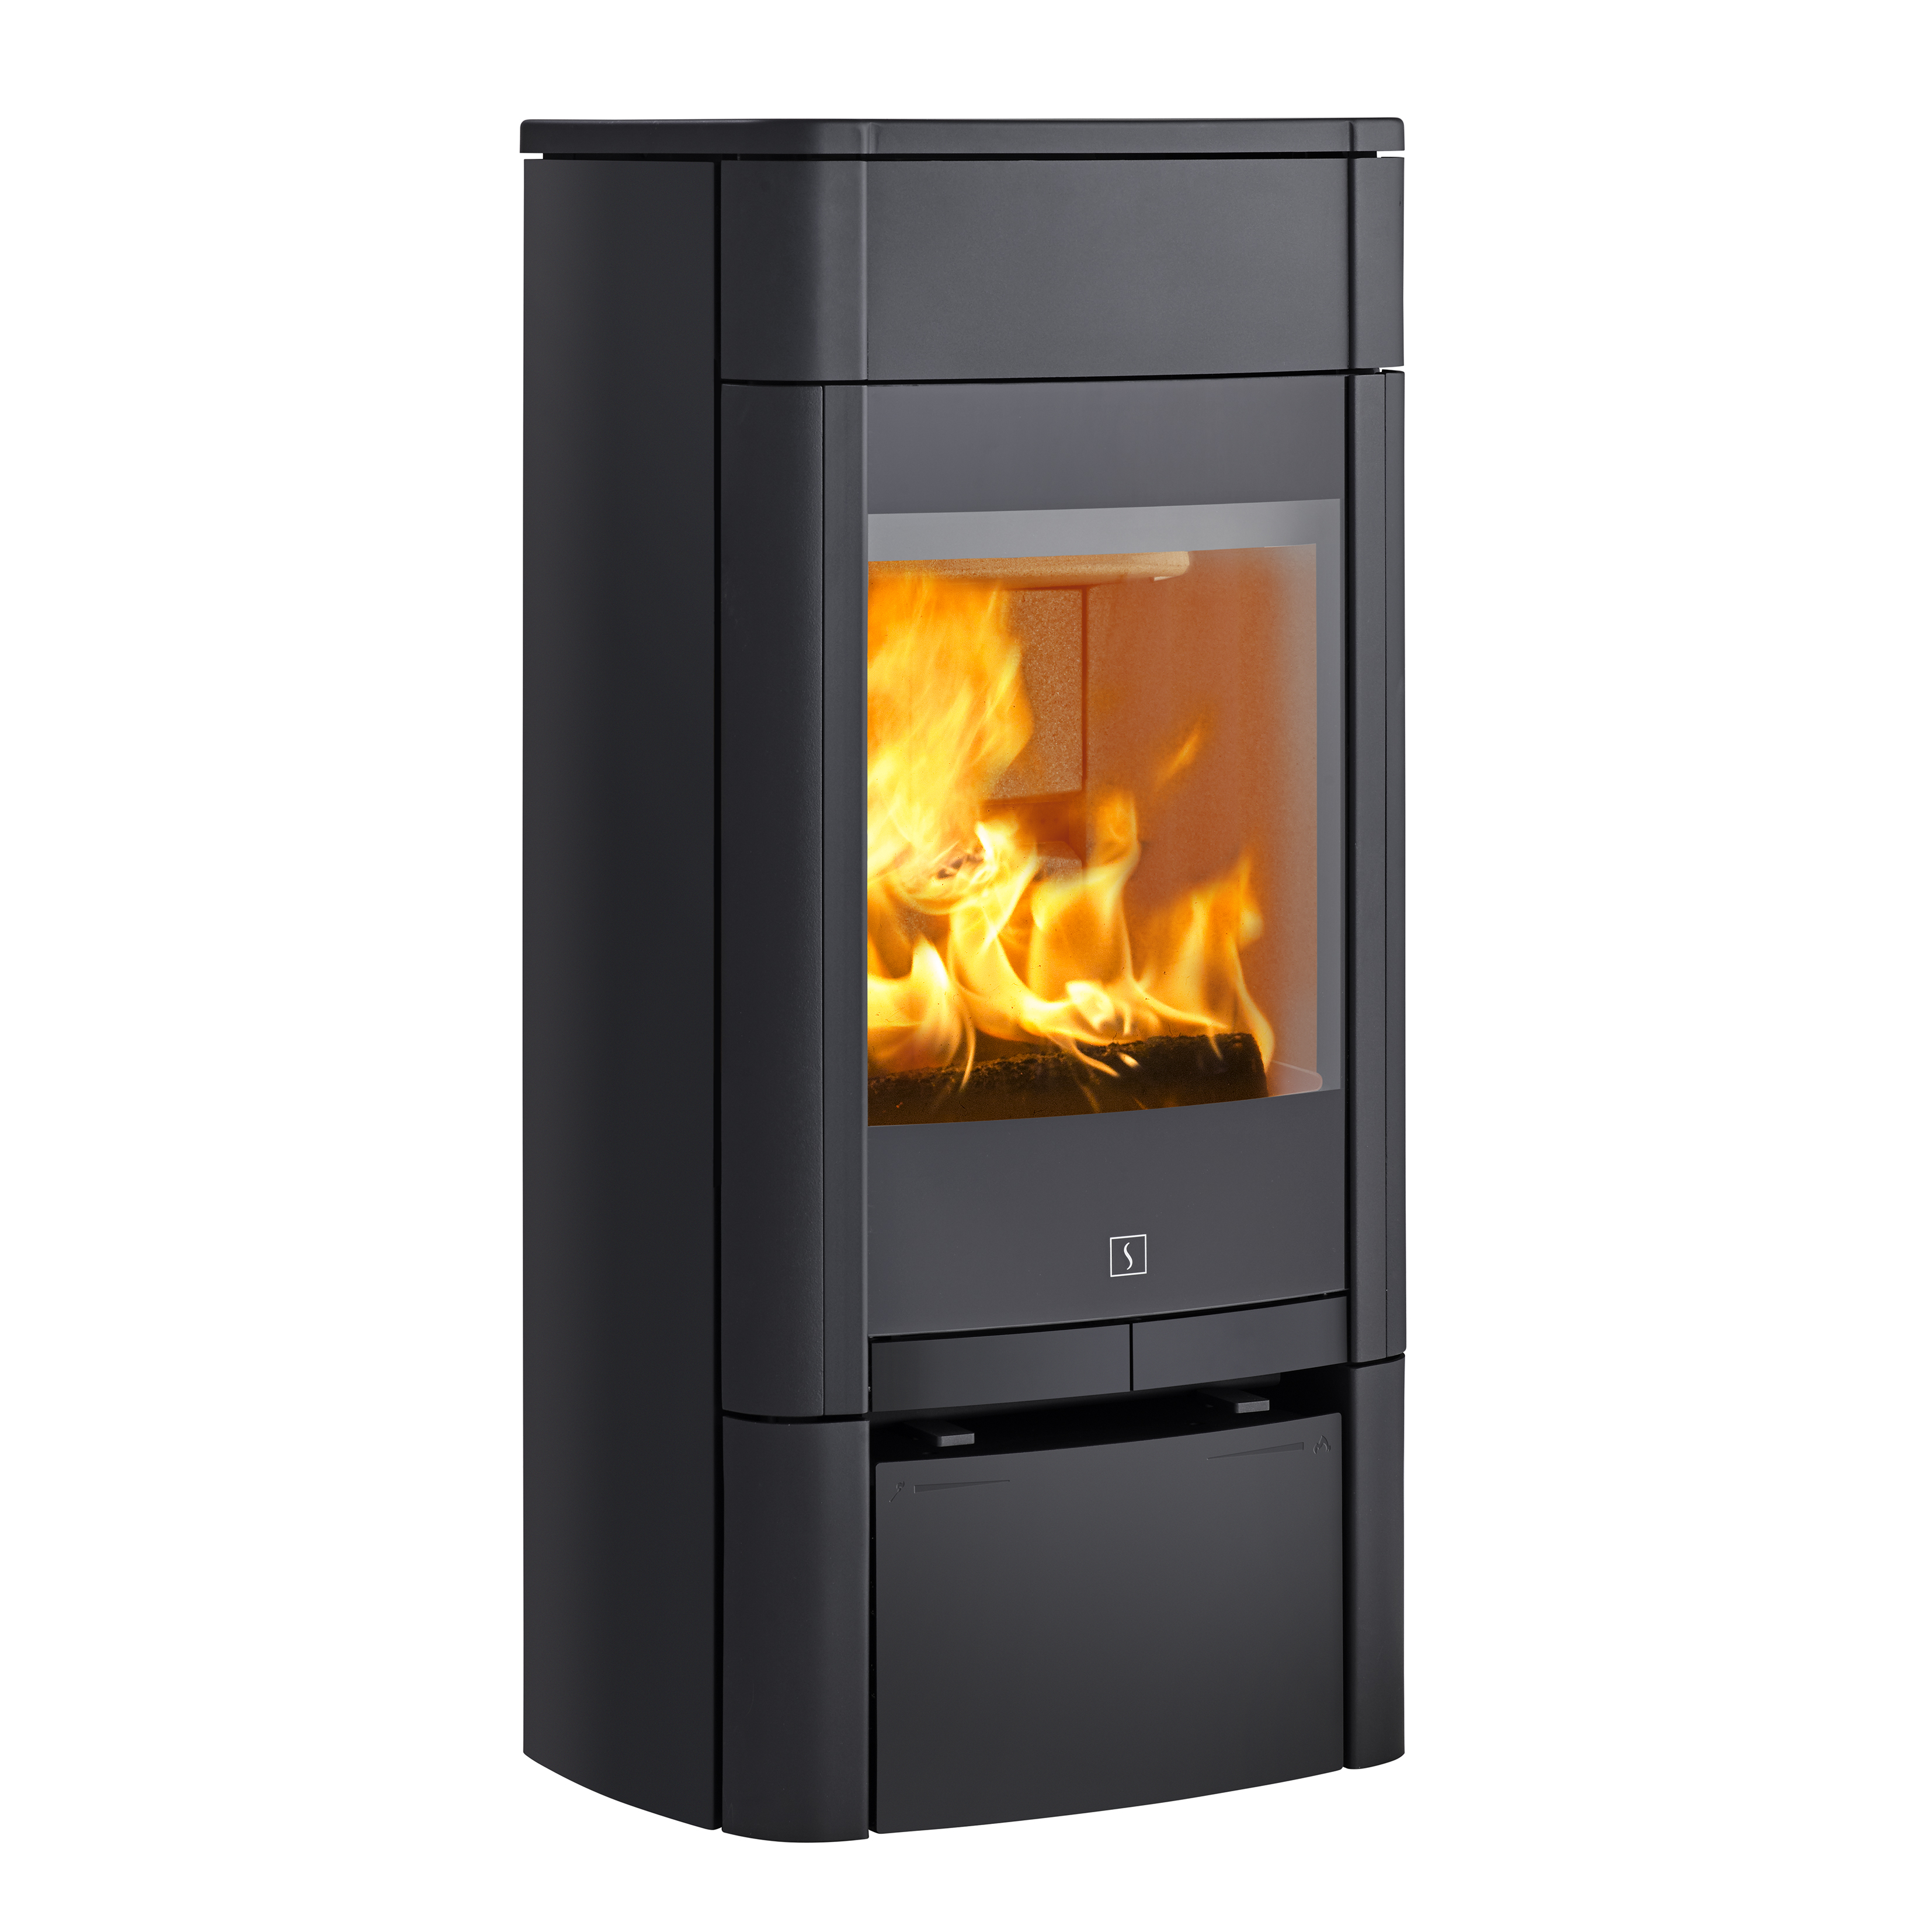 scan 65 1 low base wood burning defra approved stove approved rh thestovesite co uk Best Cleaner for Glass Fireplace Doors Fireplace Cover Doors